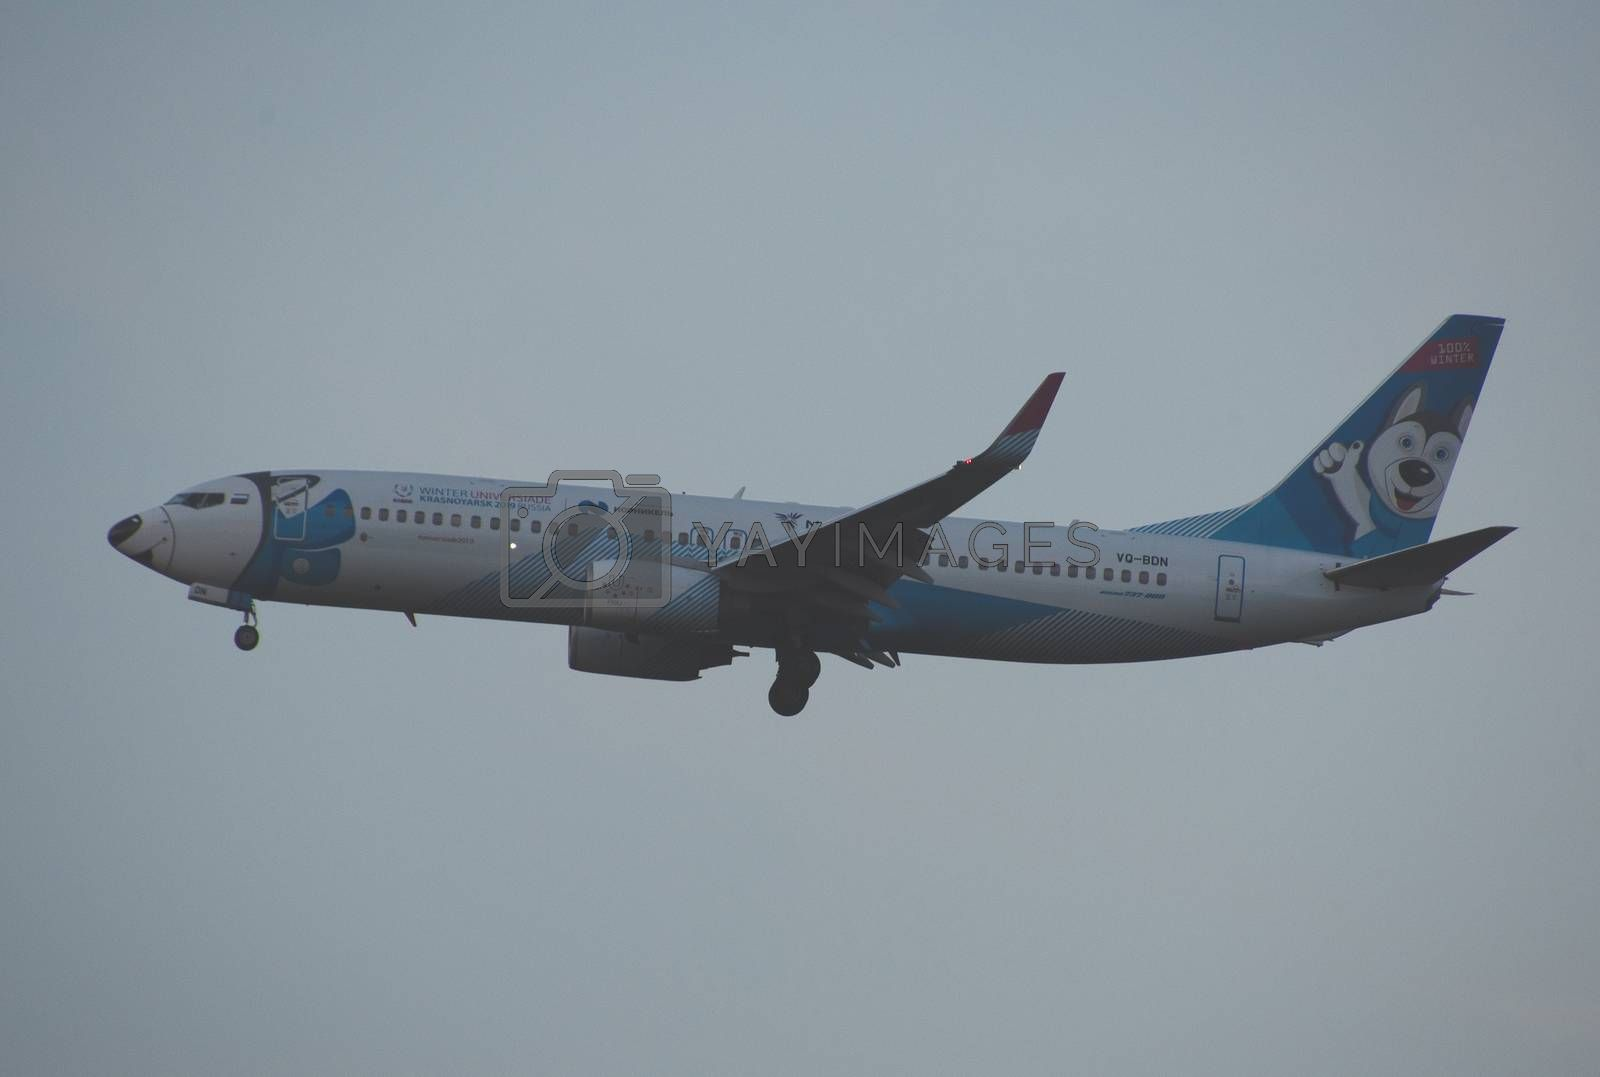 8 JULY 2018 Russia, Moscow. The aircraft Boeing 737 NordStar Airlines painted in Winter Universiade Krasnoyarsk 2019 special colours is landing at the Domodedovo airport.